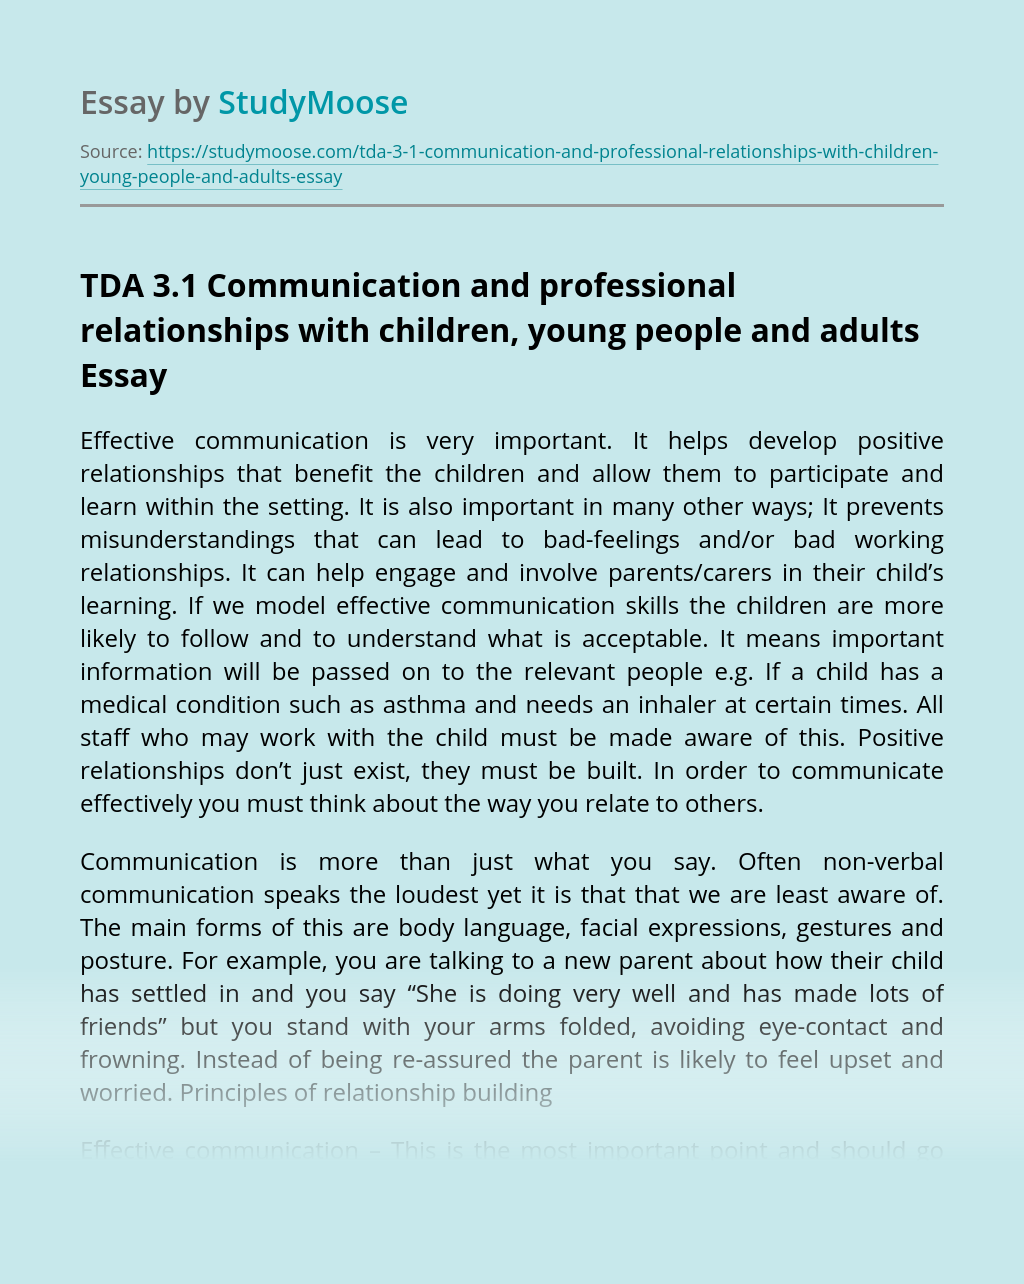 TDA 3.1 Communication and professional relationships with children, young people and adults